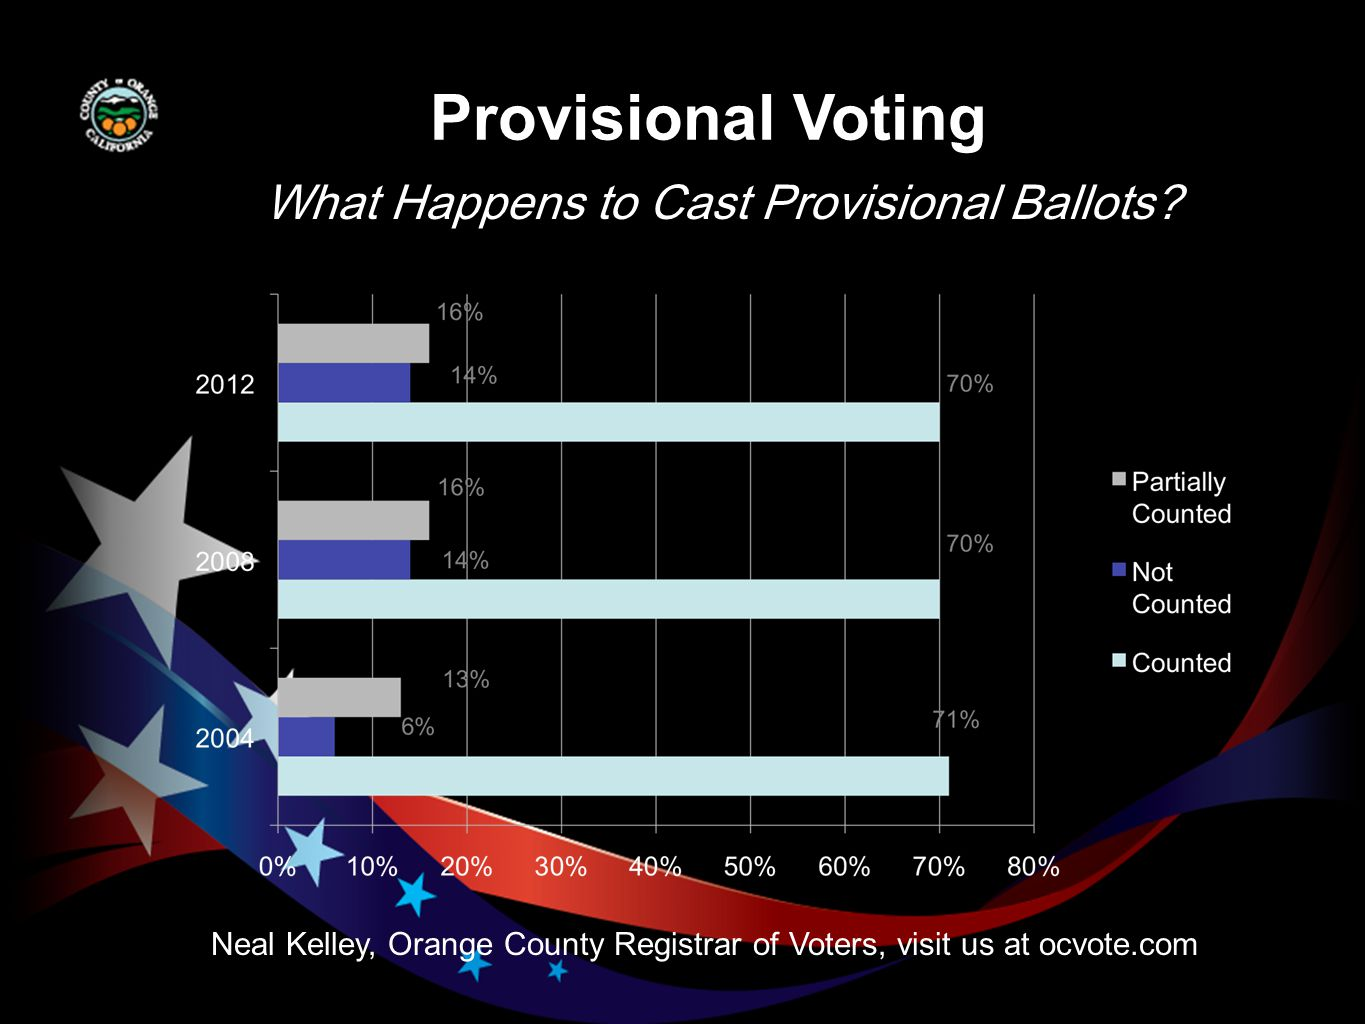 Provisional Voting Neal Kelley, Orange County Registrar of Voters, visit us at ocvote.com What Happens to Cast Provisional Ballots